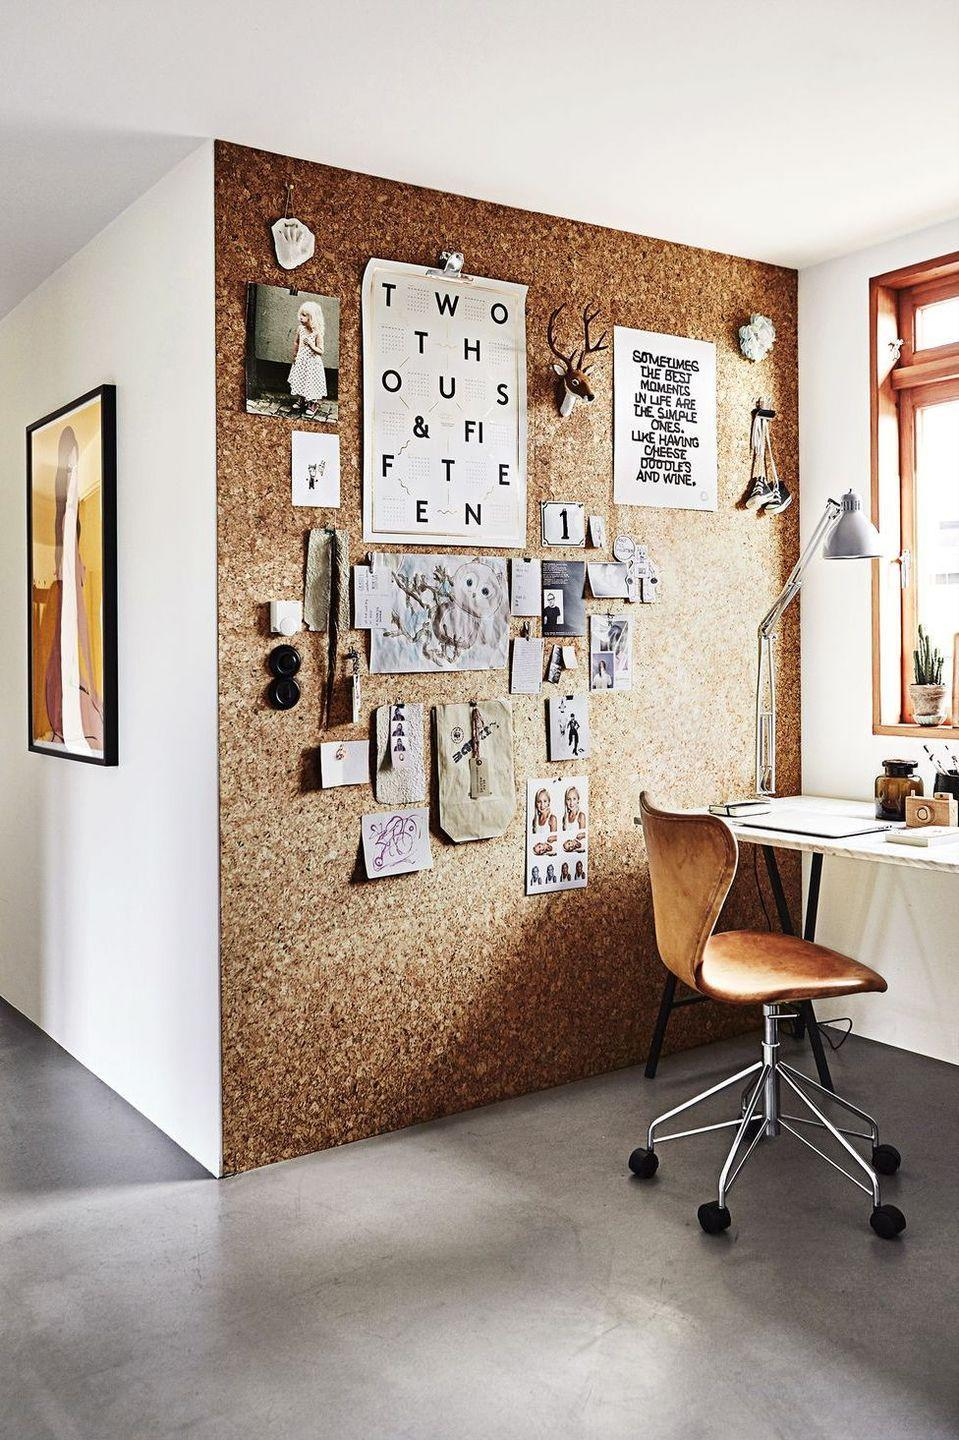 <p>If you like the look of collages and need ample space to keep your to-do list on full display in your home office, deck out a wall in cork square panels. It's the perfect blend of style and function. <br></p>